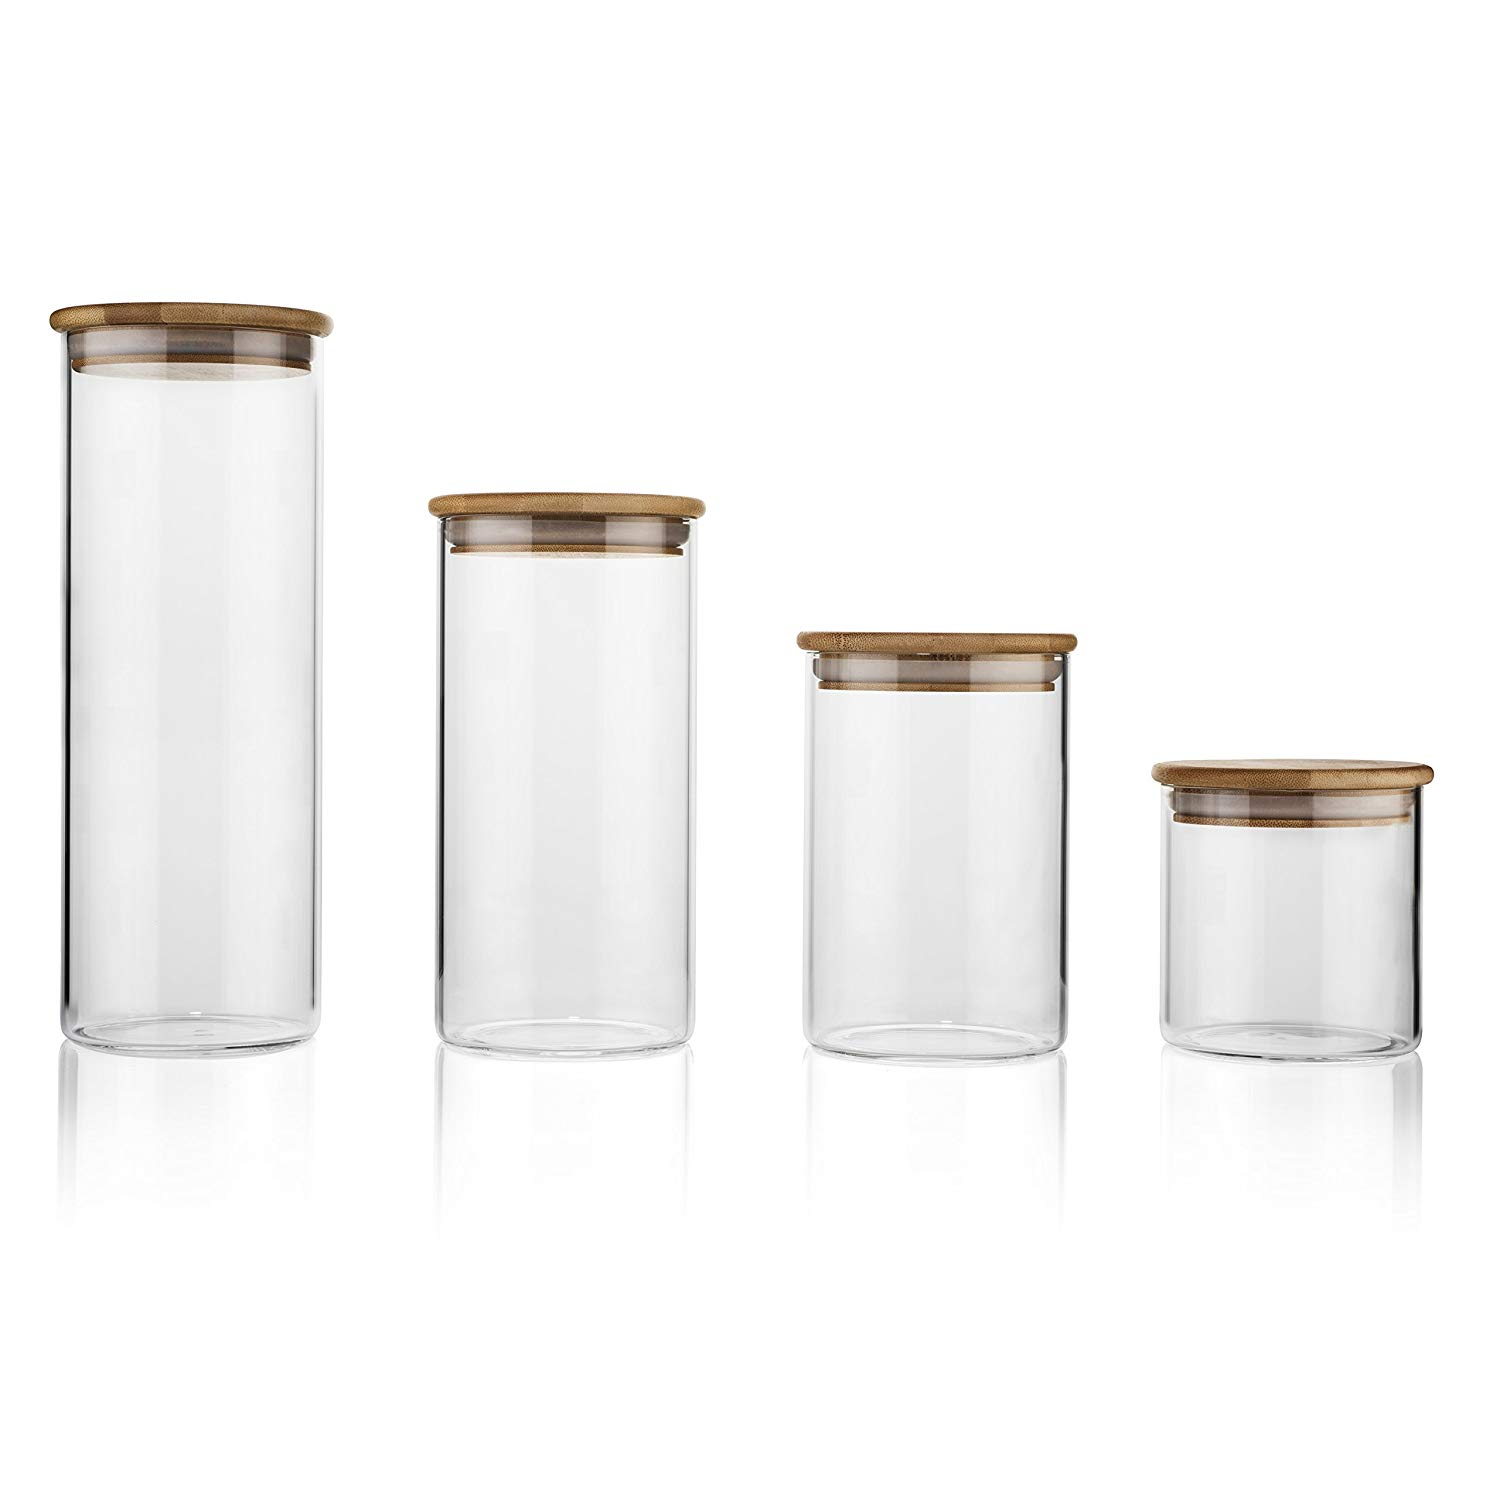 Glass Canisters.jpg